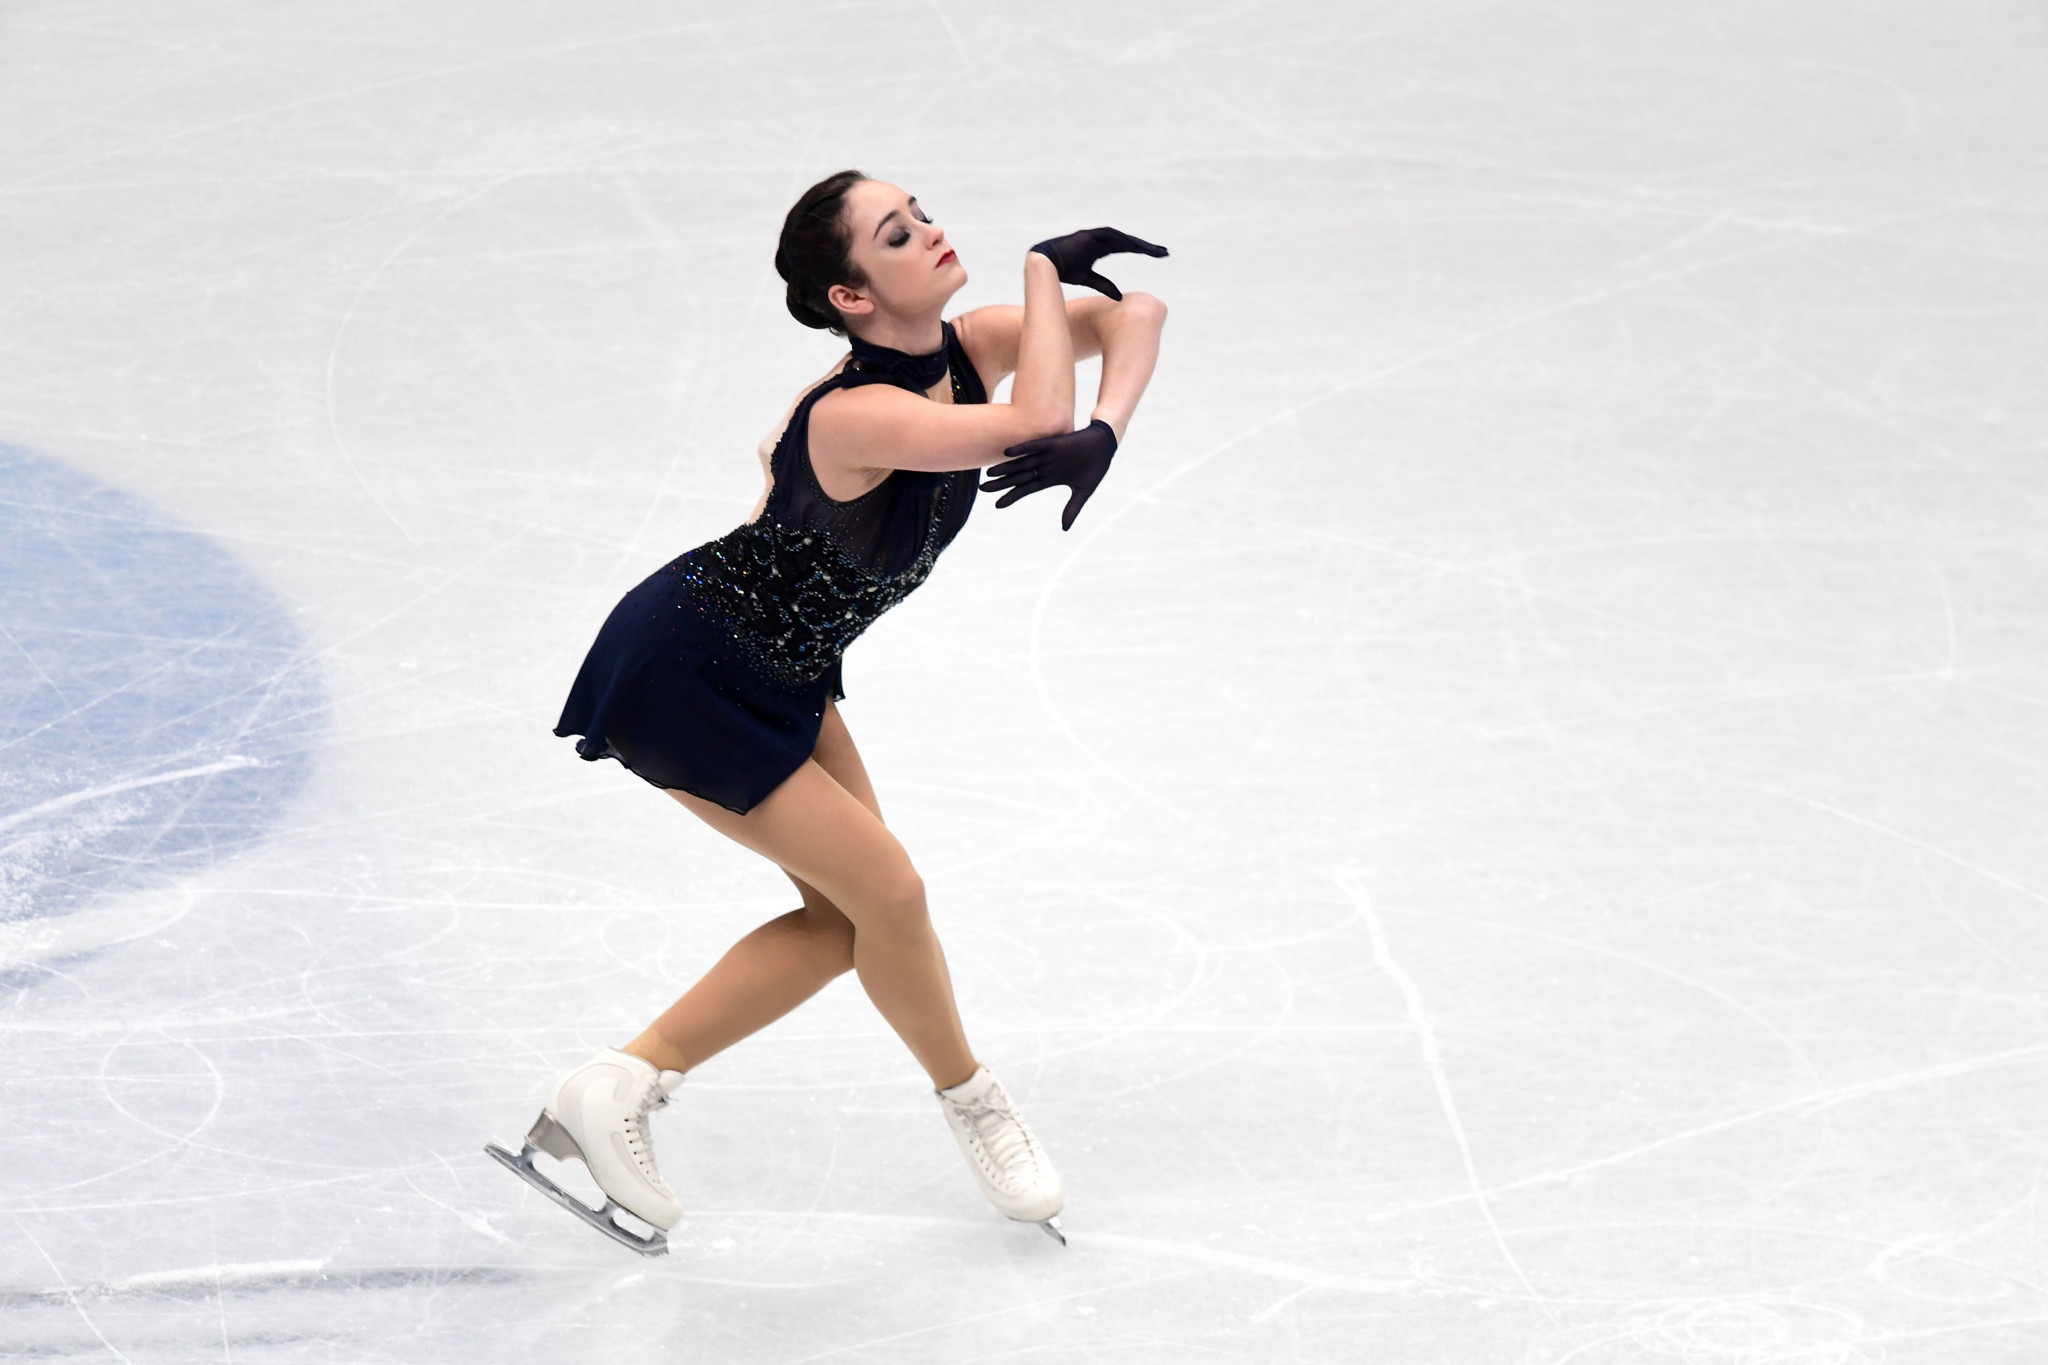 Kaetlyn Osmond has confirmed she will sit out the entire 2018 to 2019 season ©Getty Images